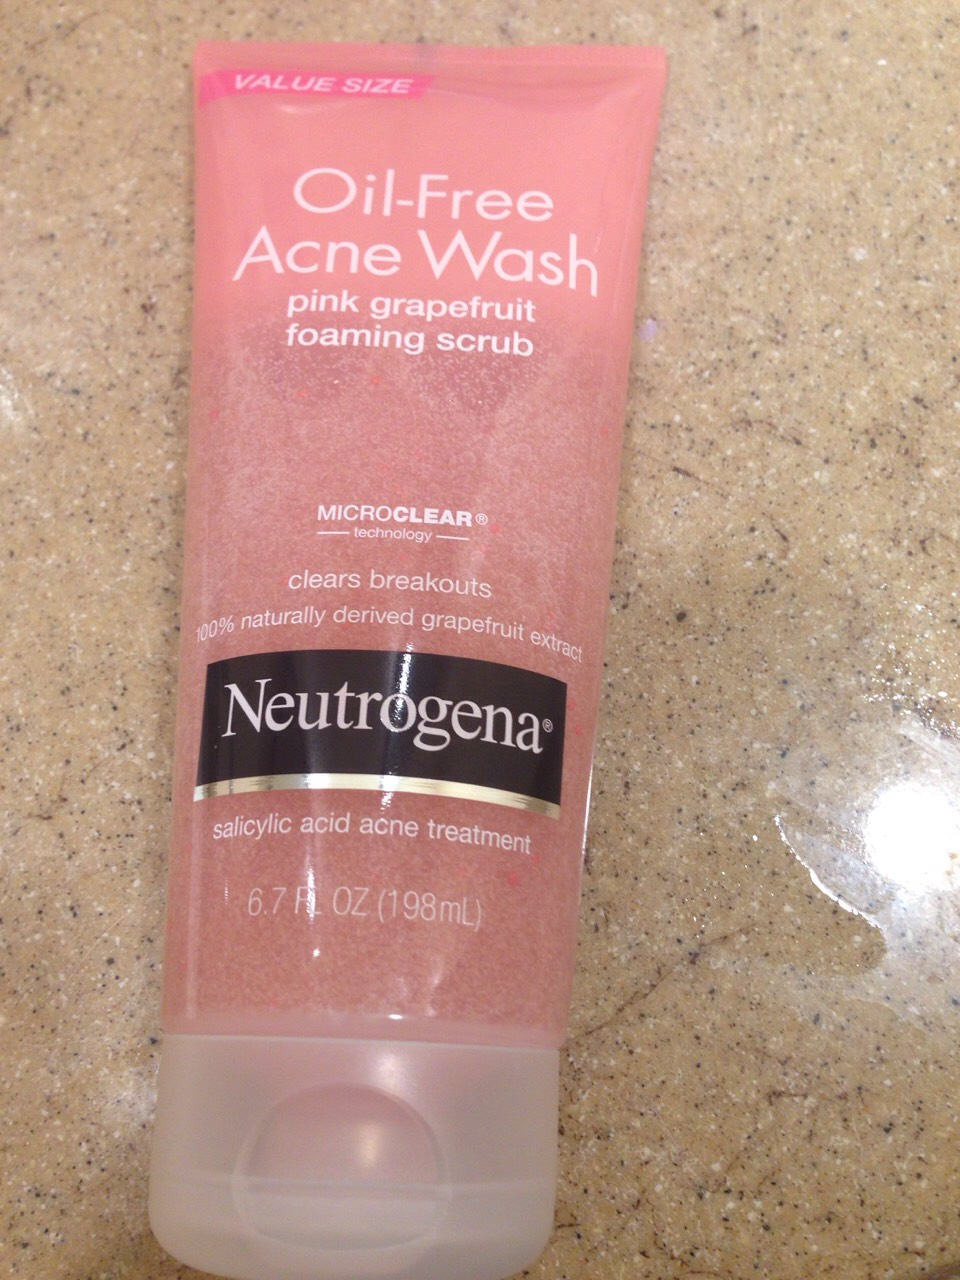 First thing I am using is the oil free acne wash pink grapefruit foaming  scrub if you do not have this you can use any other foaming scrub that clears breakouts 💆